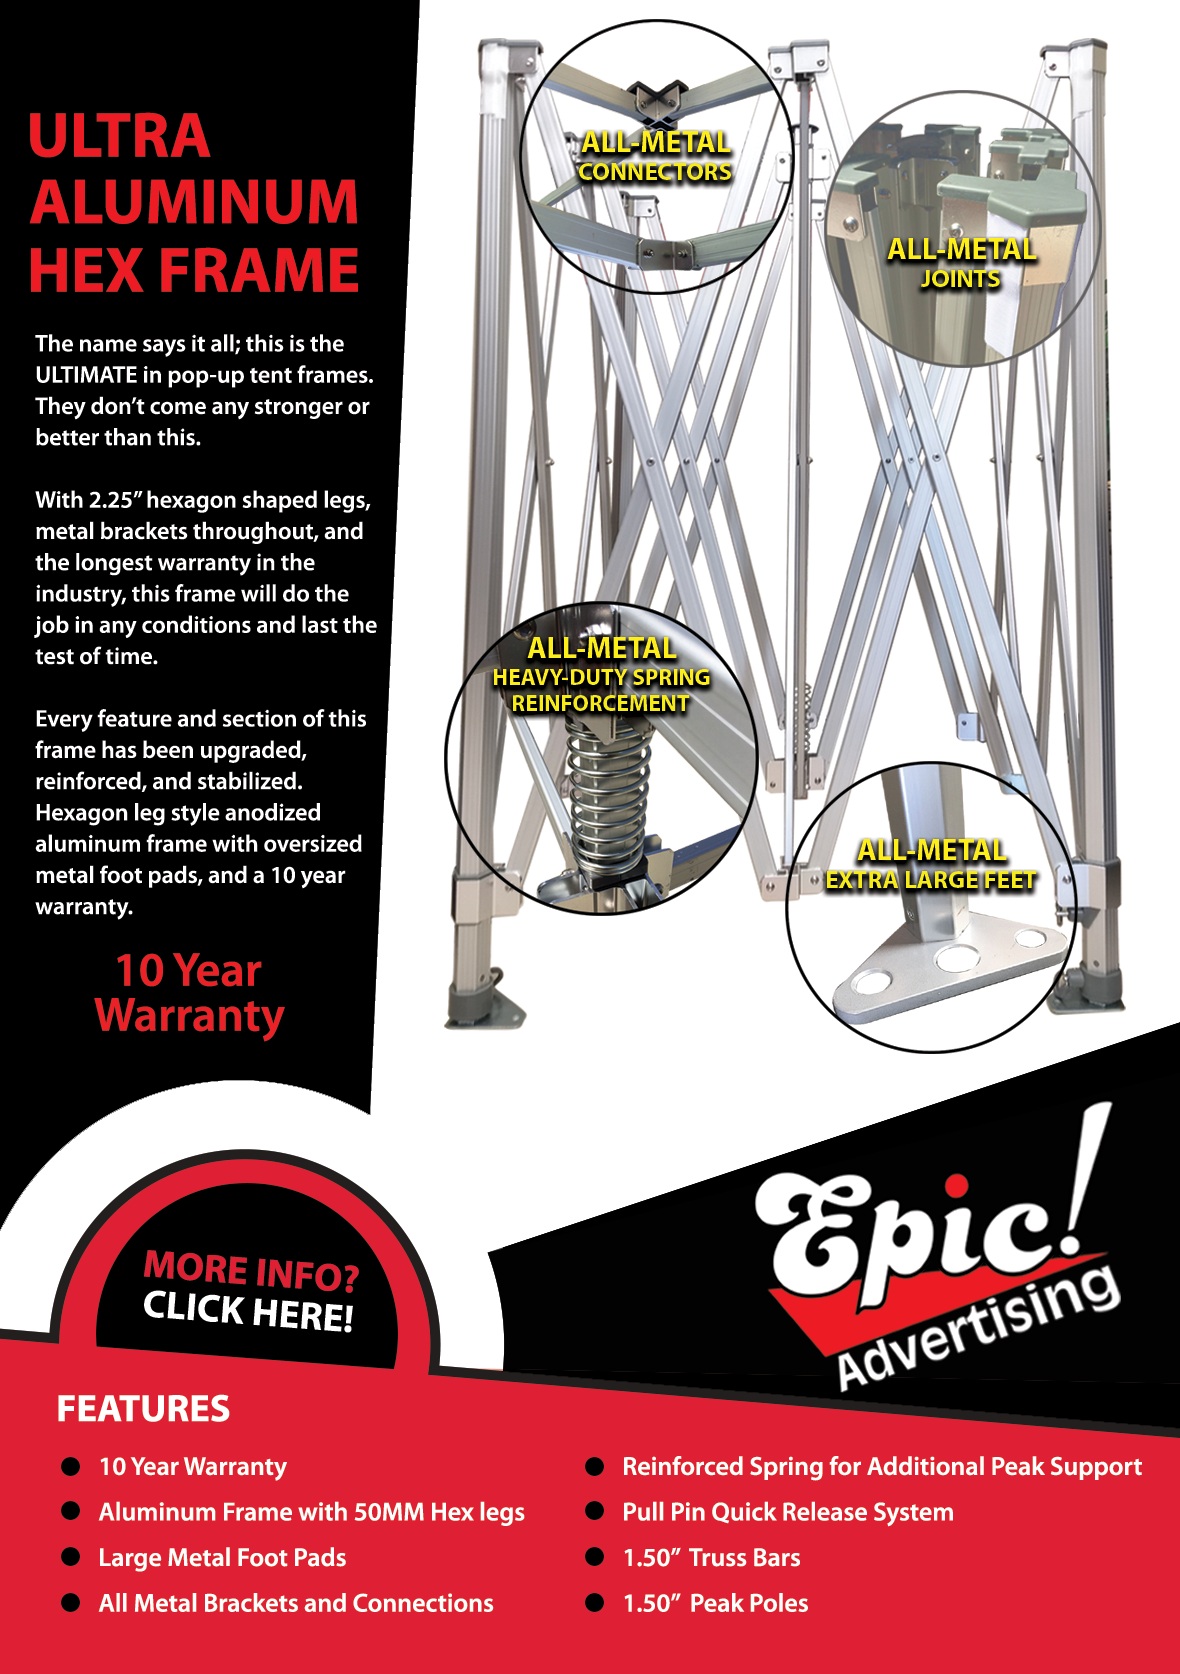 Ultra Aluminum Hex frame for pop up tent